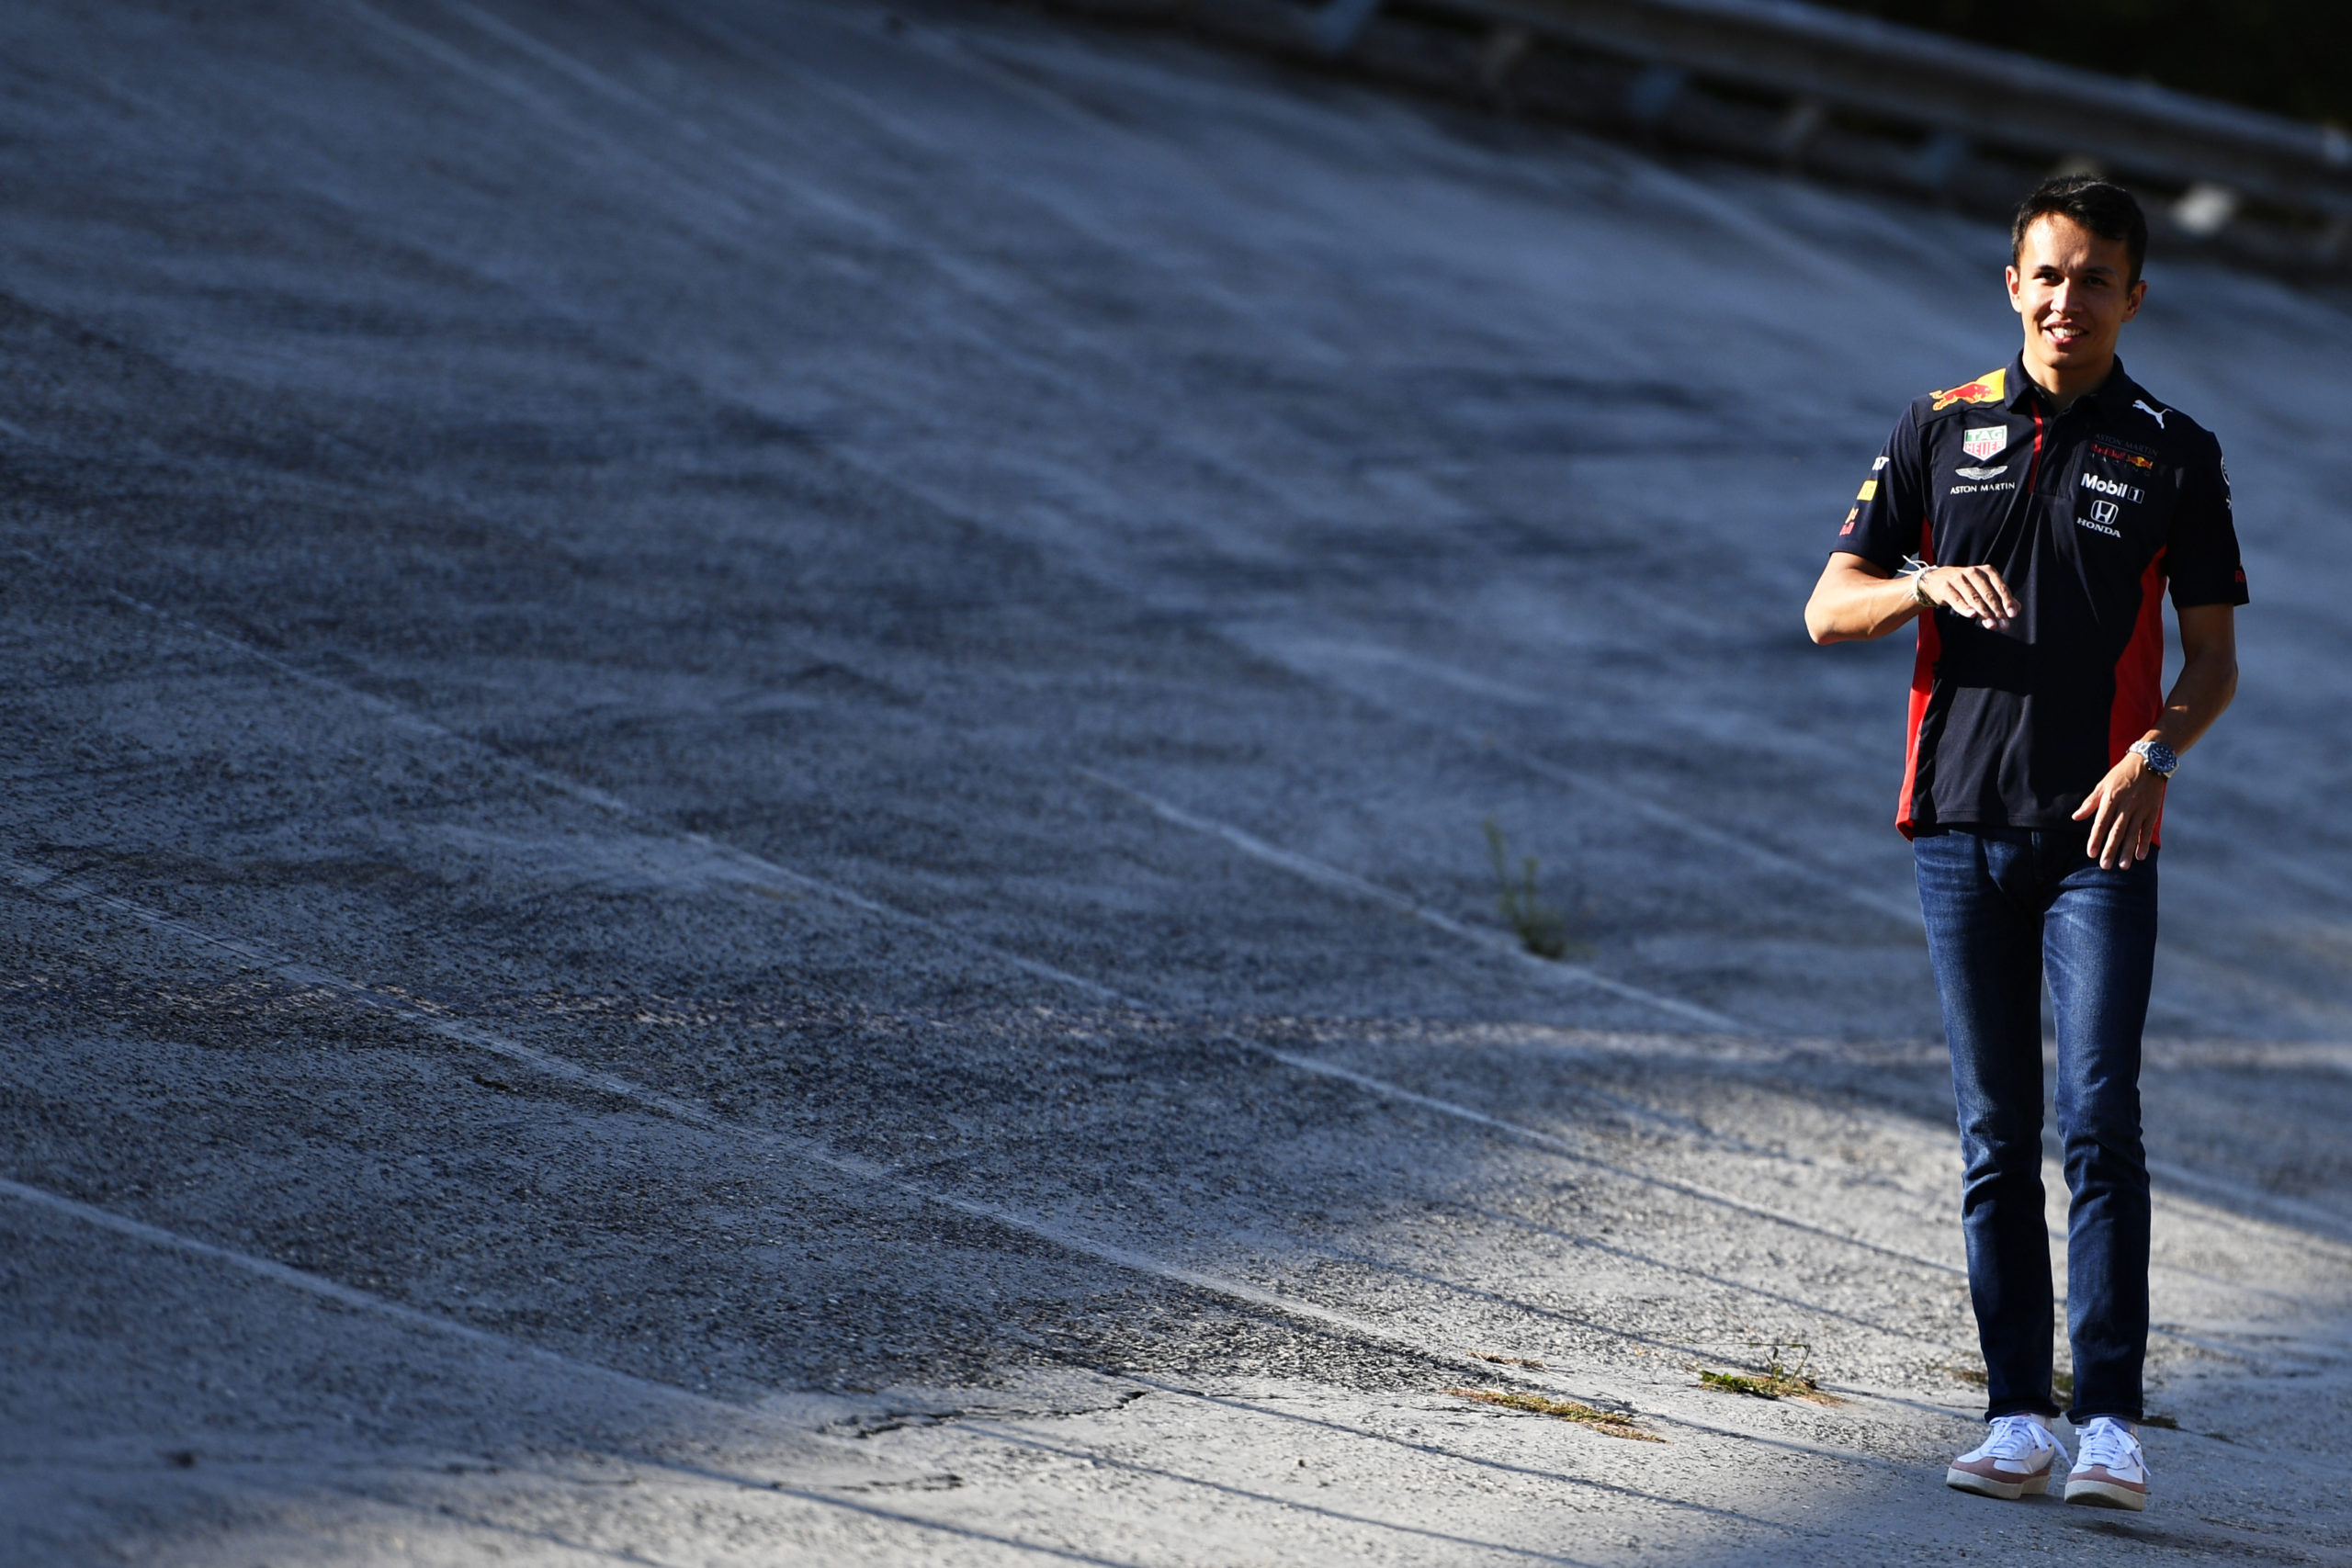 MONZA, ITALY - SEPTEMBER 03: Alexander Albon of Thailand and Red Bull Racing walks on the old circuit banking during previews ahead of the F1 Grand Prix of Italy at Autodromo di Monza on September 03, 2020 in Monza, Italy. (Photo by Rudy Carezzevoli/Getty Images) // Getty Images / Red Bull Content Pool  // SI202009040024 // Usage for editorial use only //